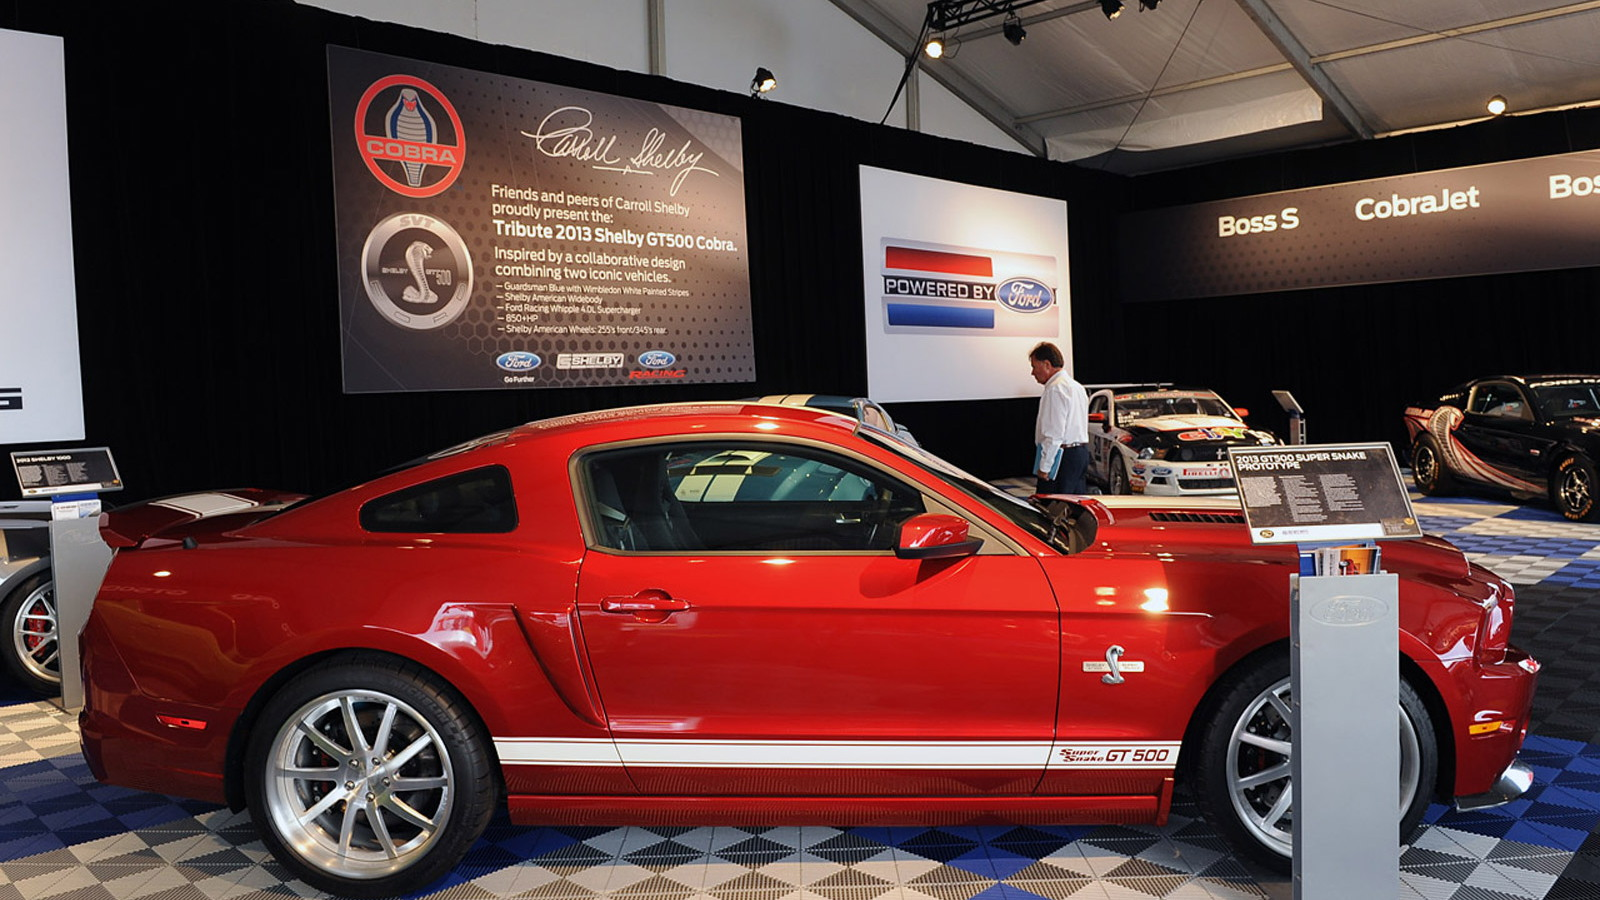 2013 Ford Mustang Shelby GT500 Super Snake prototype